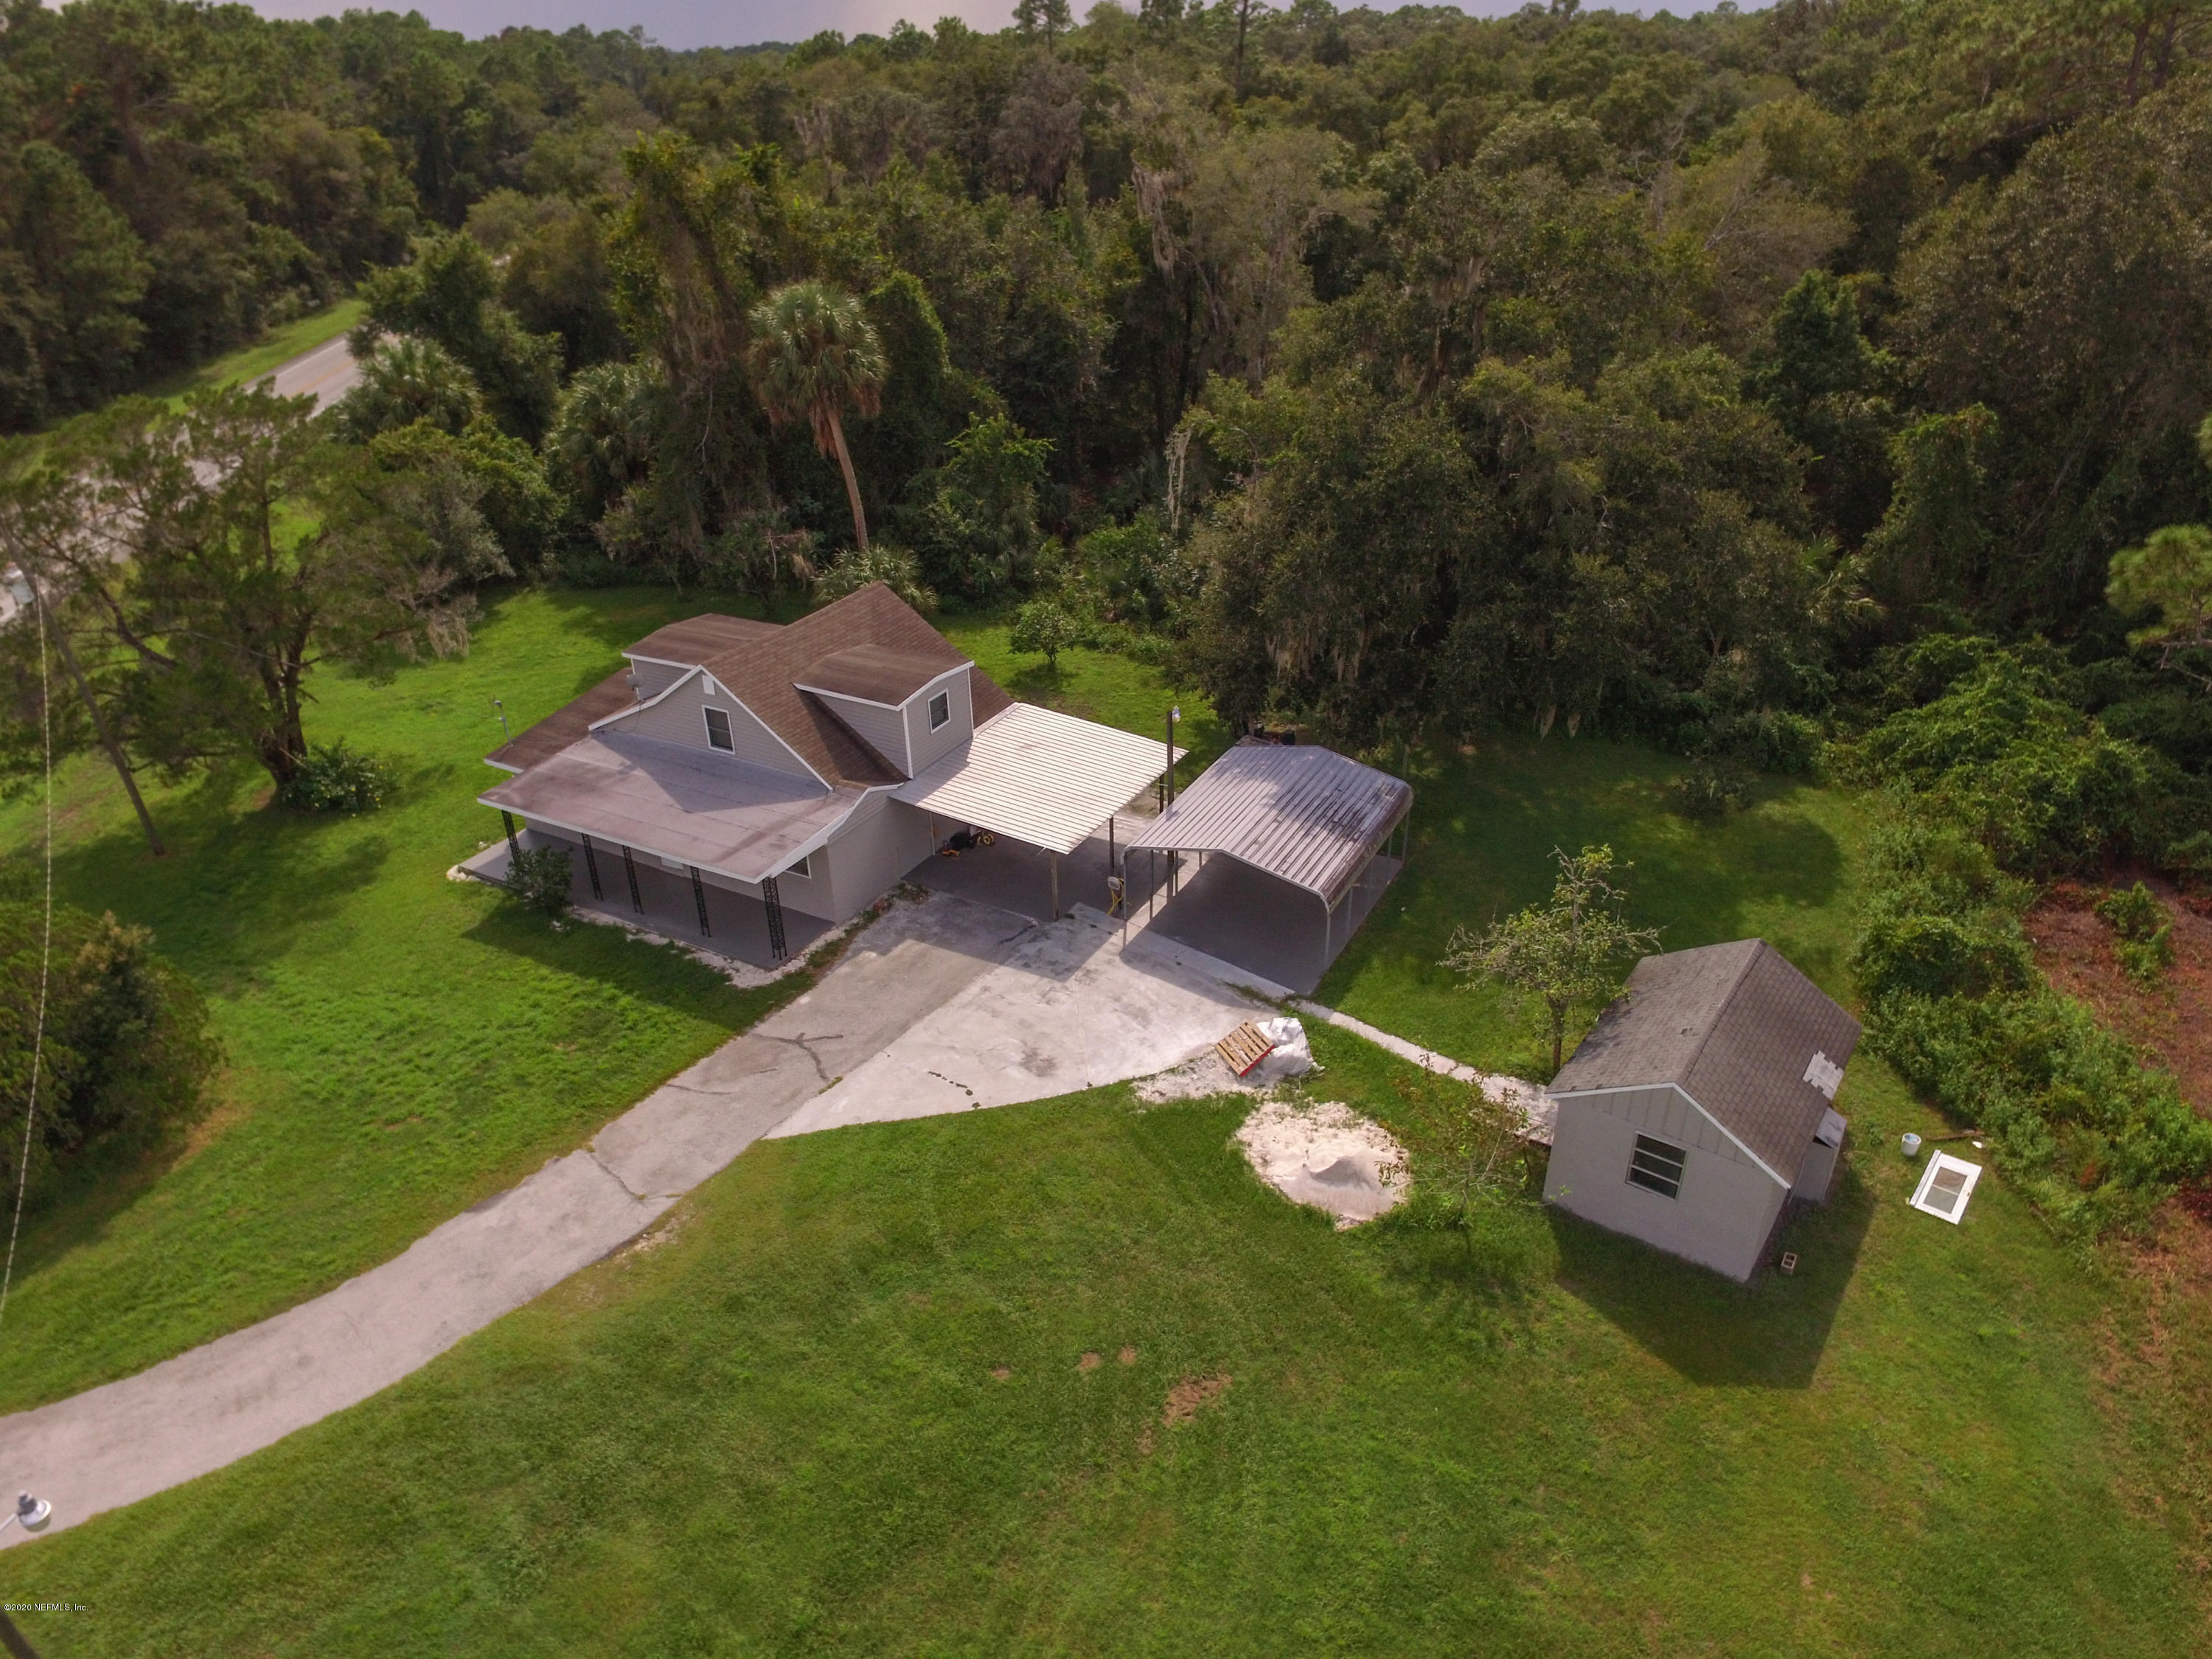 1172 STATE RD 19, PALATKA, FLORIDA 32177, 2 Bedrooms Bedrooms, ,2 BathroomsBathrooms,Residential,For sale,STATE RD 19,990672